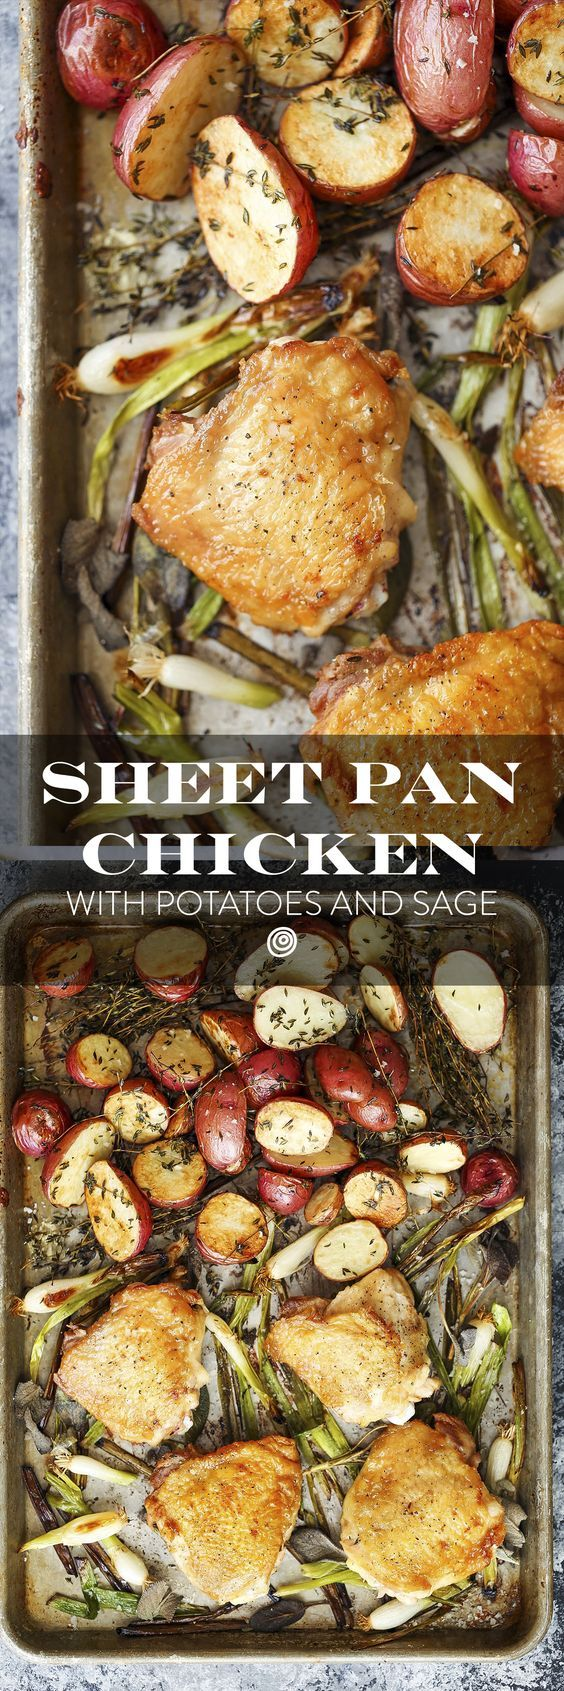 Best 25 whole food recipes ideas on pinterest whole 30 recipes best 25 whole food recipes ideas on pinterest whole 30 recipes paleo meal prep and healthy meal prep forumfinder Image collections